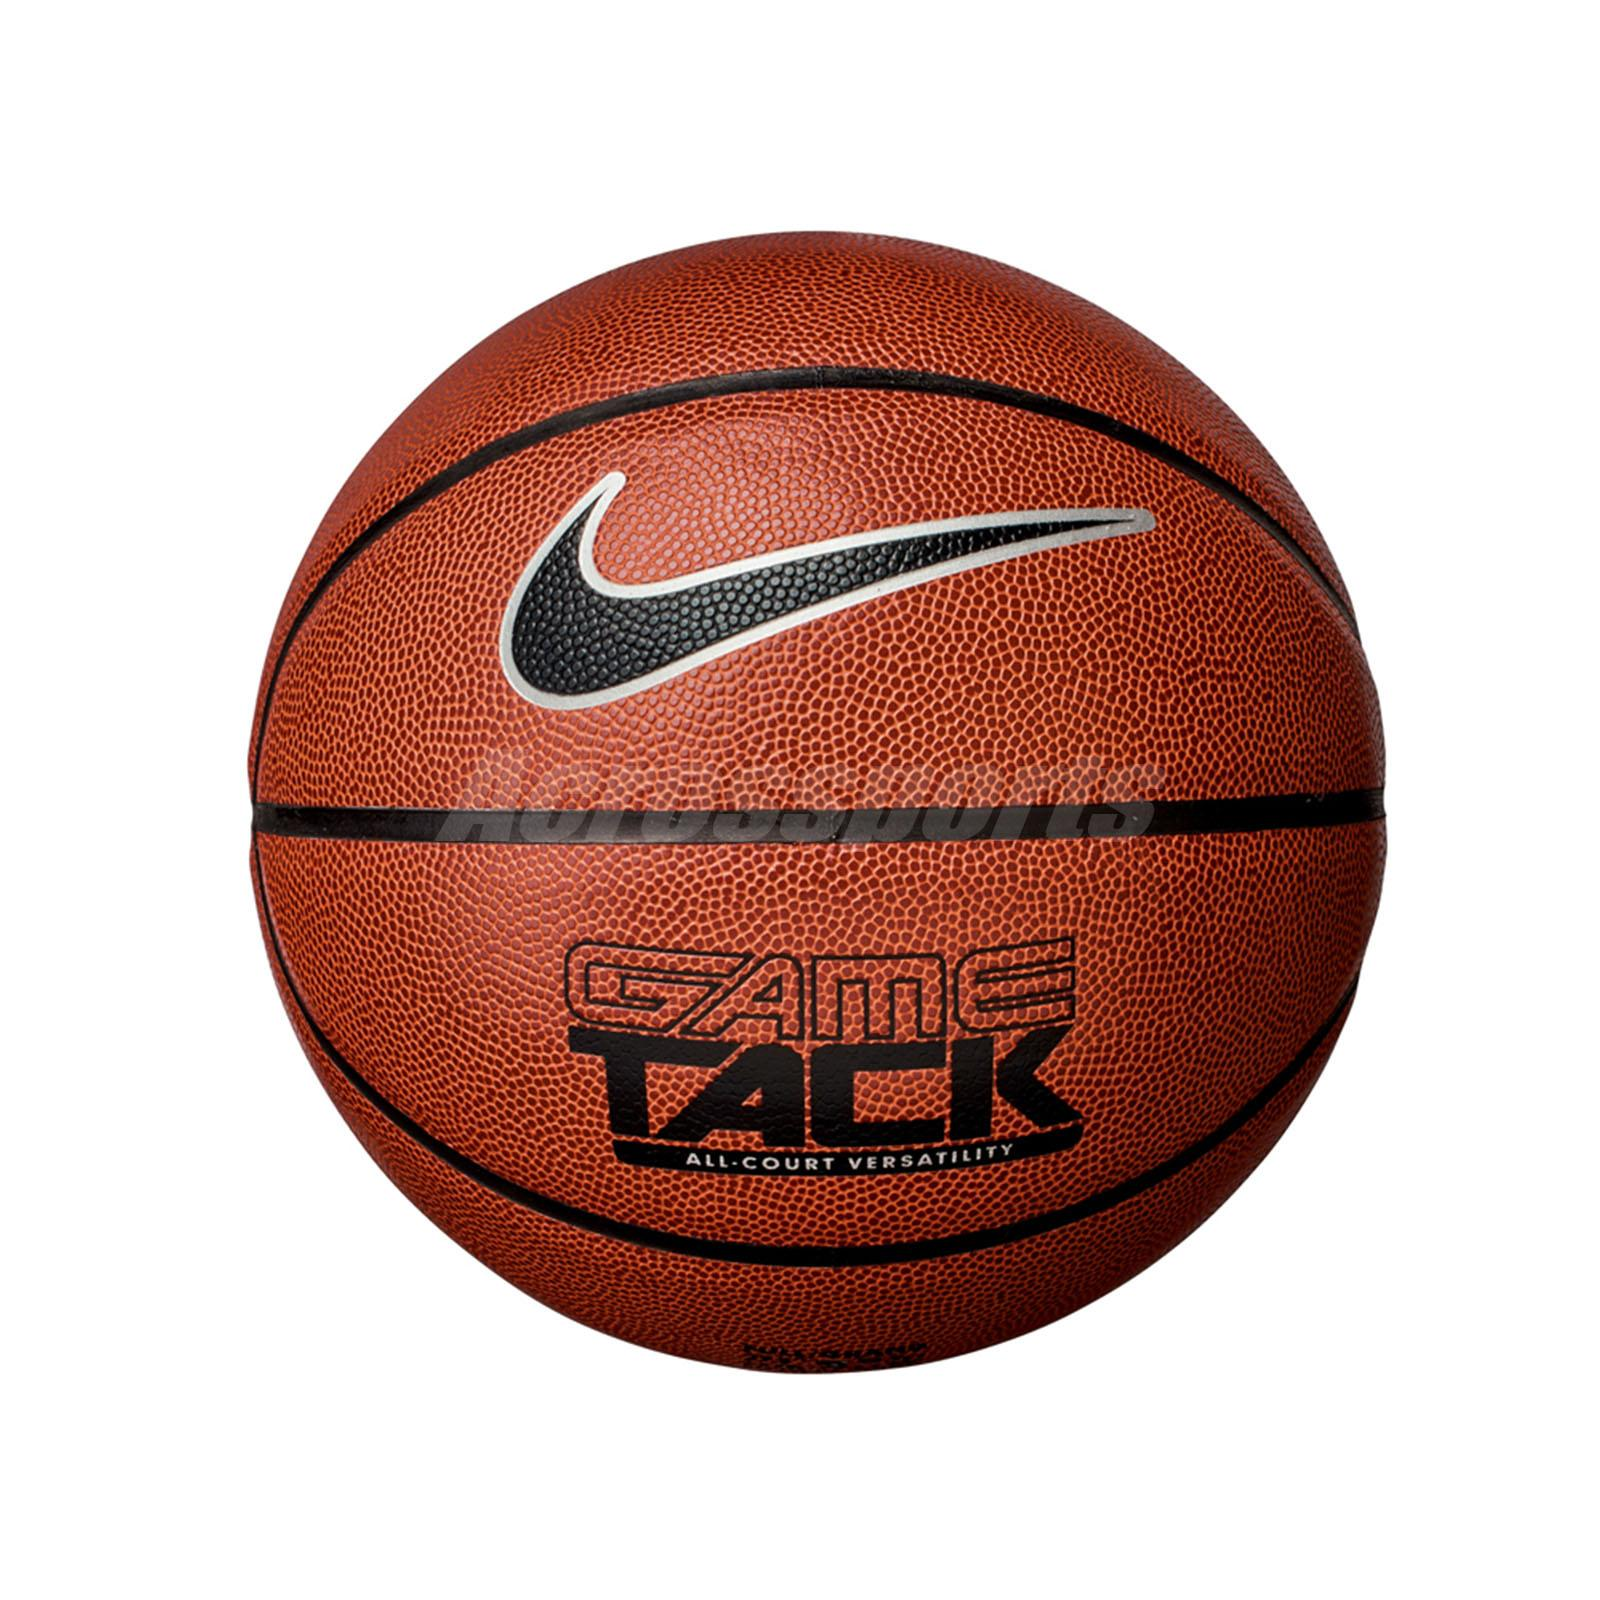 Nike Game Tack Basketball Indoor Outdoor All Court Versatility Game Ball  Size 7 cf06c5b65